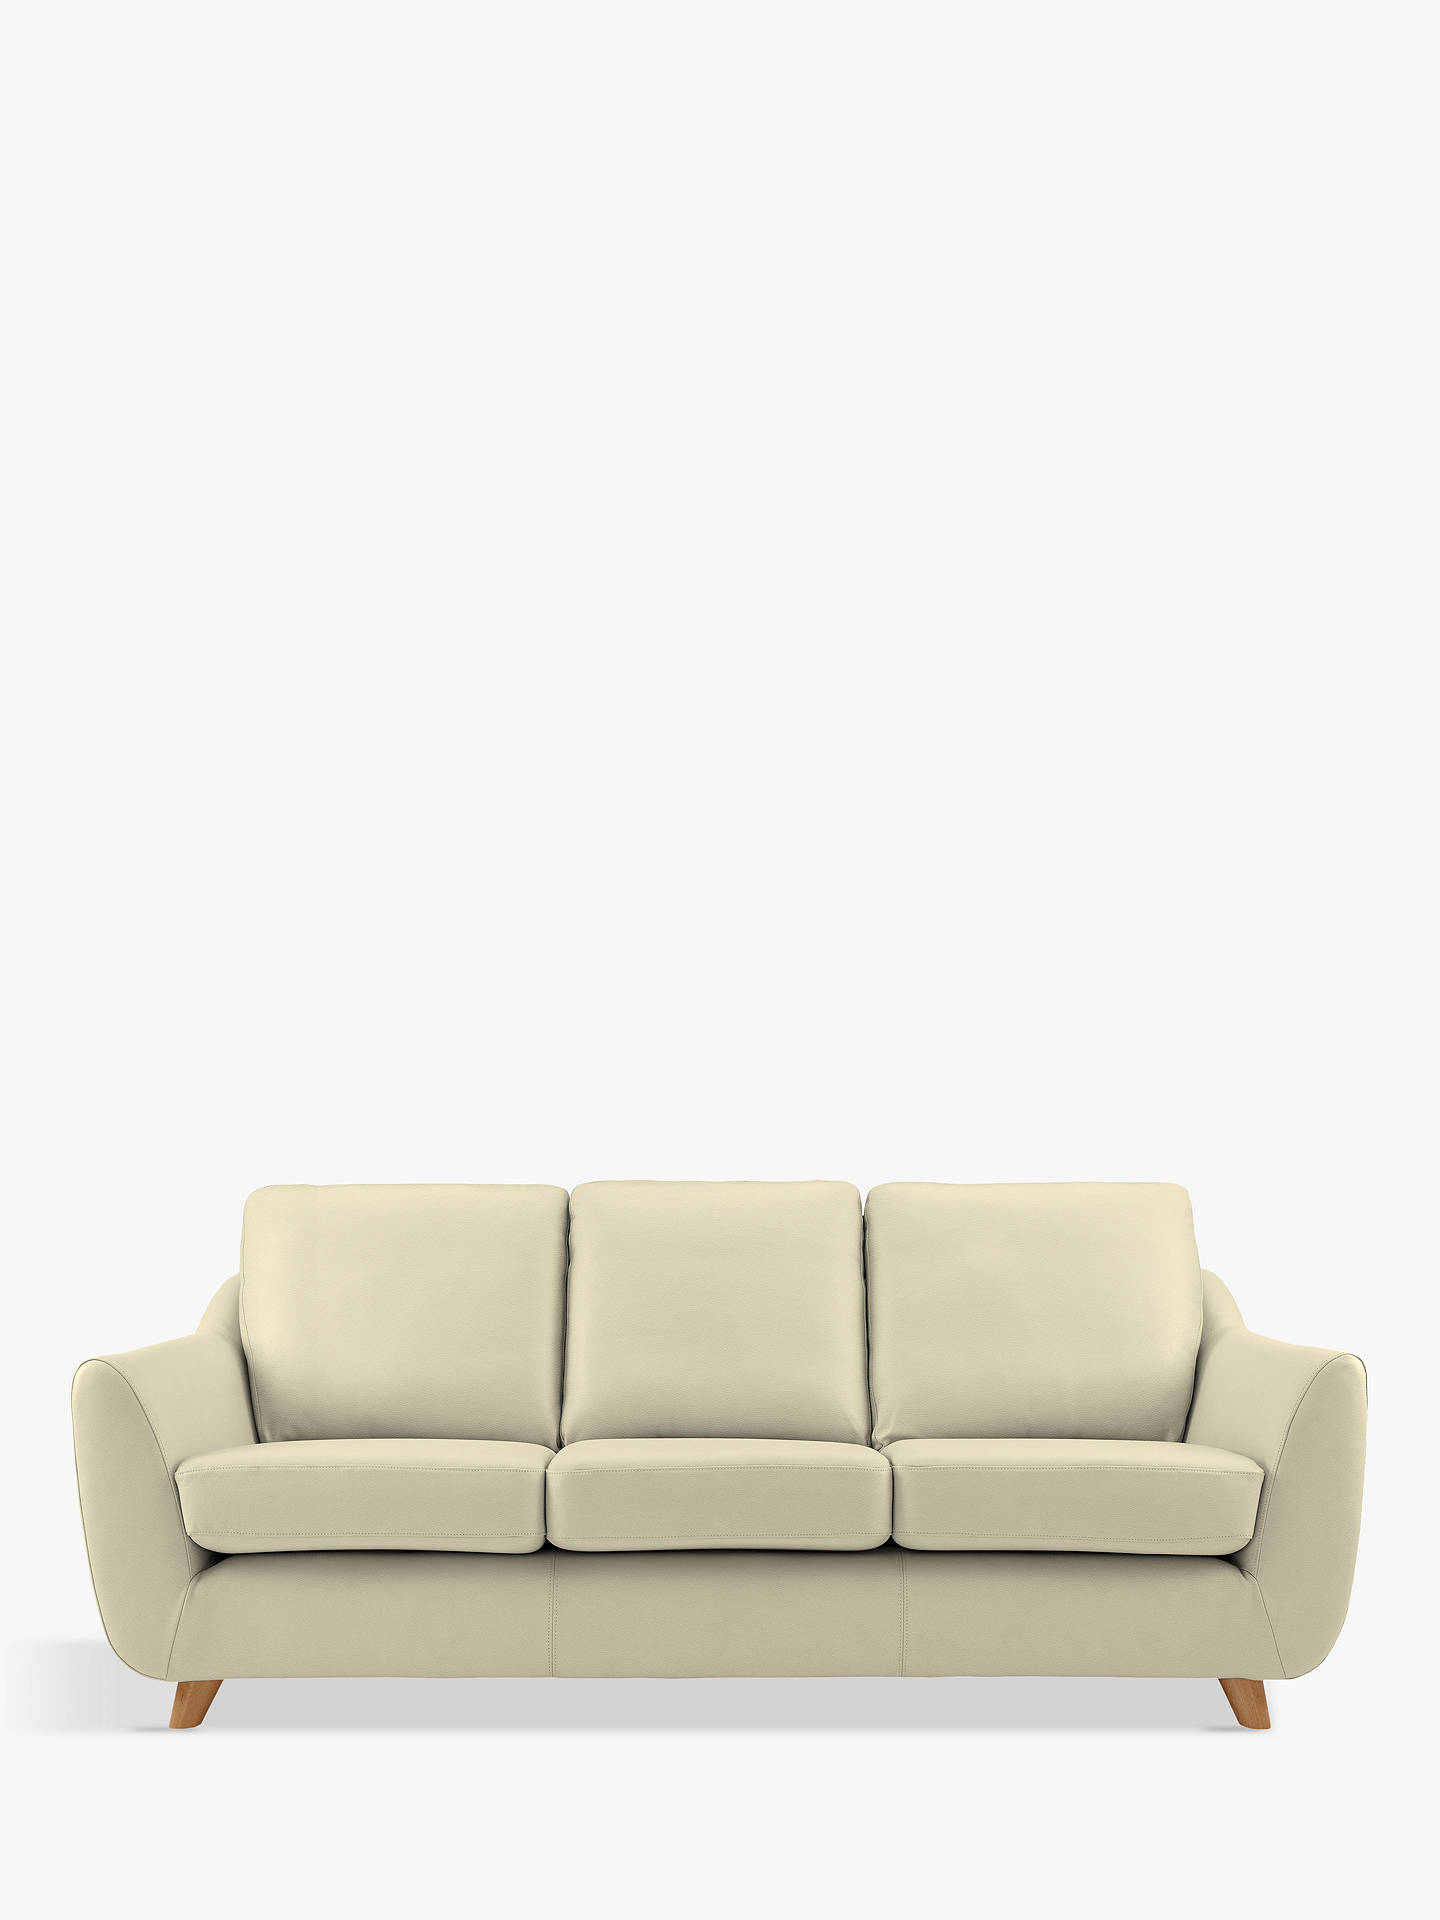 Buy G Plan Vintage The Sixty Seven Large 3 Seater Leather Sofa, Capri Chalk Online at johnlewis.com